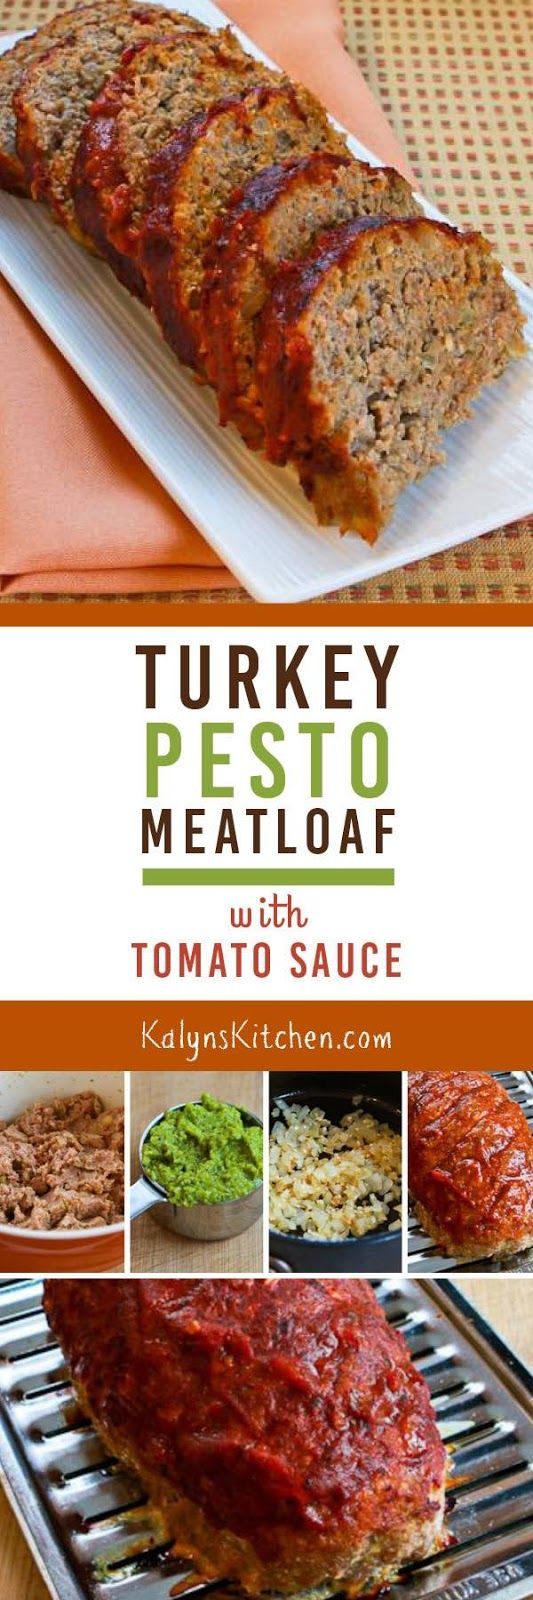 Turkey Pesto Meatloaf with Tomato Sauce is a delicious variation on turkey meatloaf, and this is loaded with flavor! [found on KalynsKitchen.com]